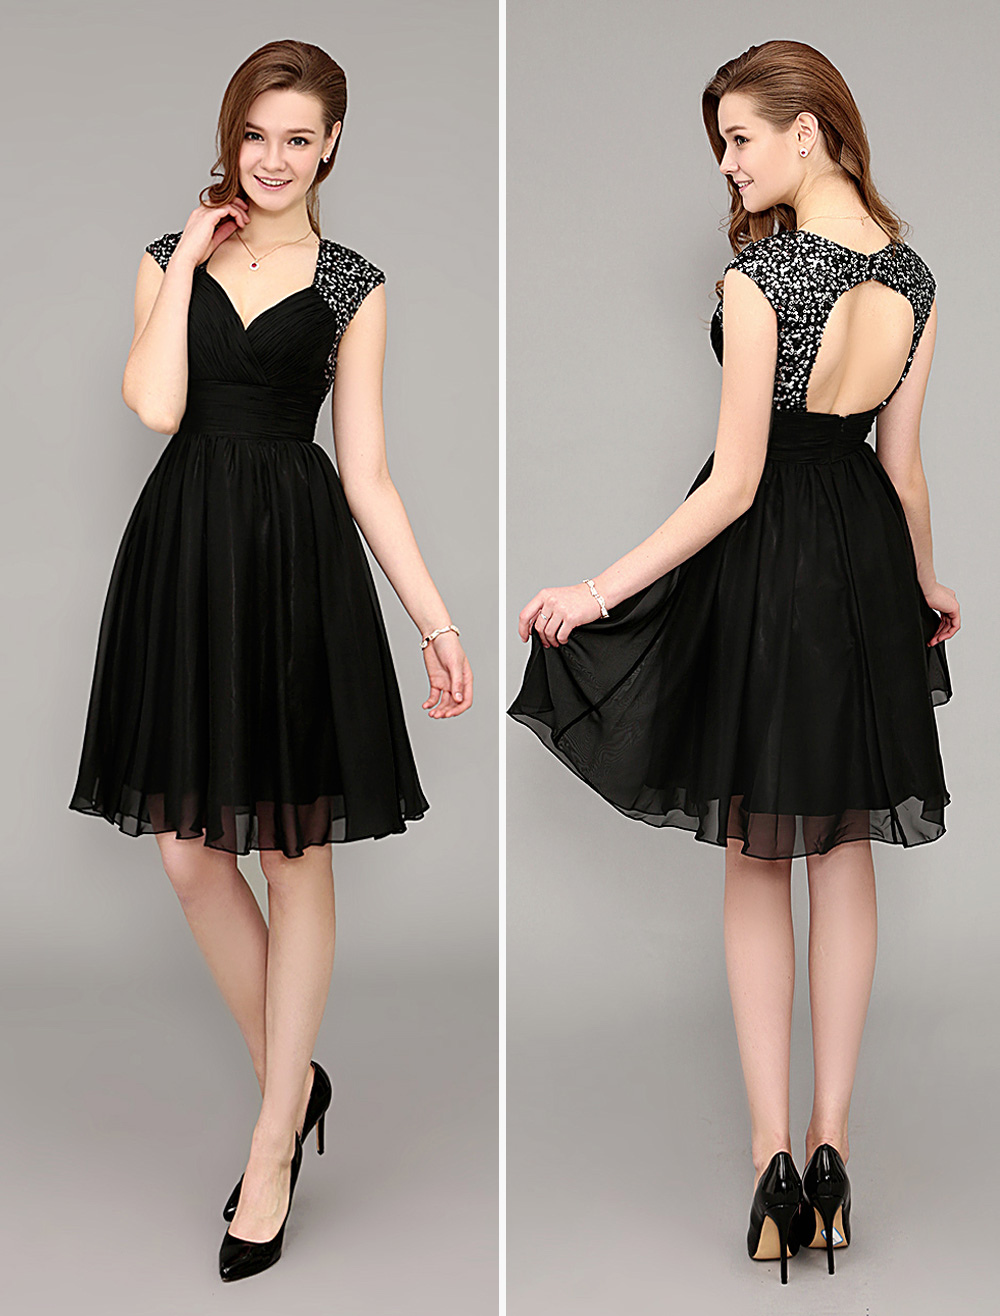 Short Sequined Black Cocktail Dress With Open Back Wedding Guest Dress (Cocktail Dresses) photo